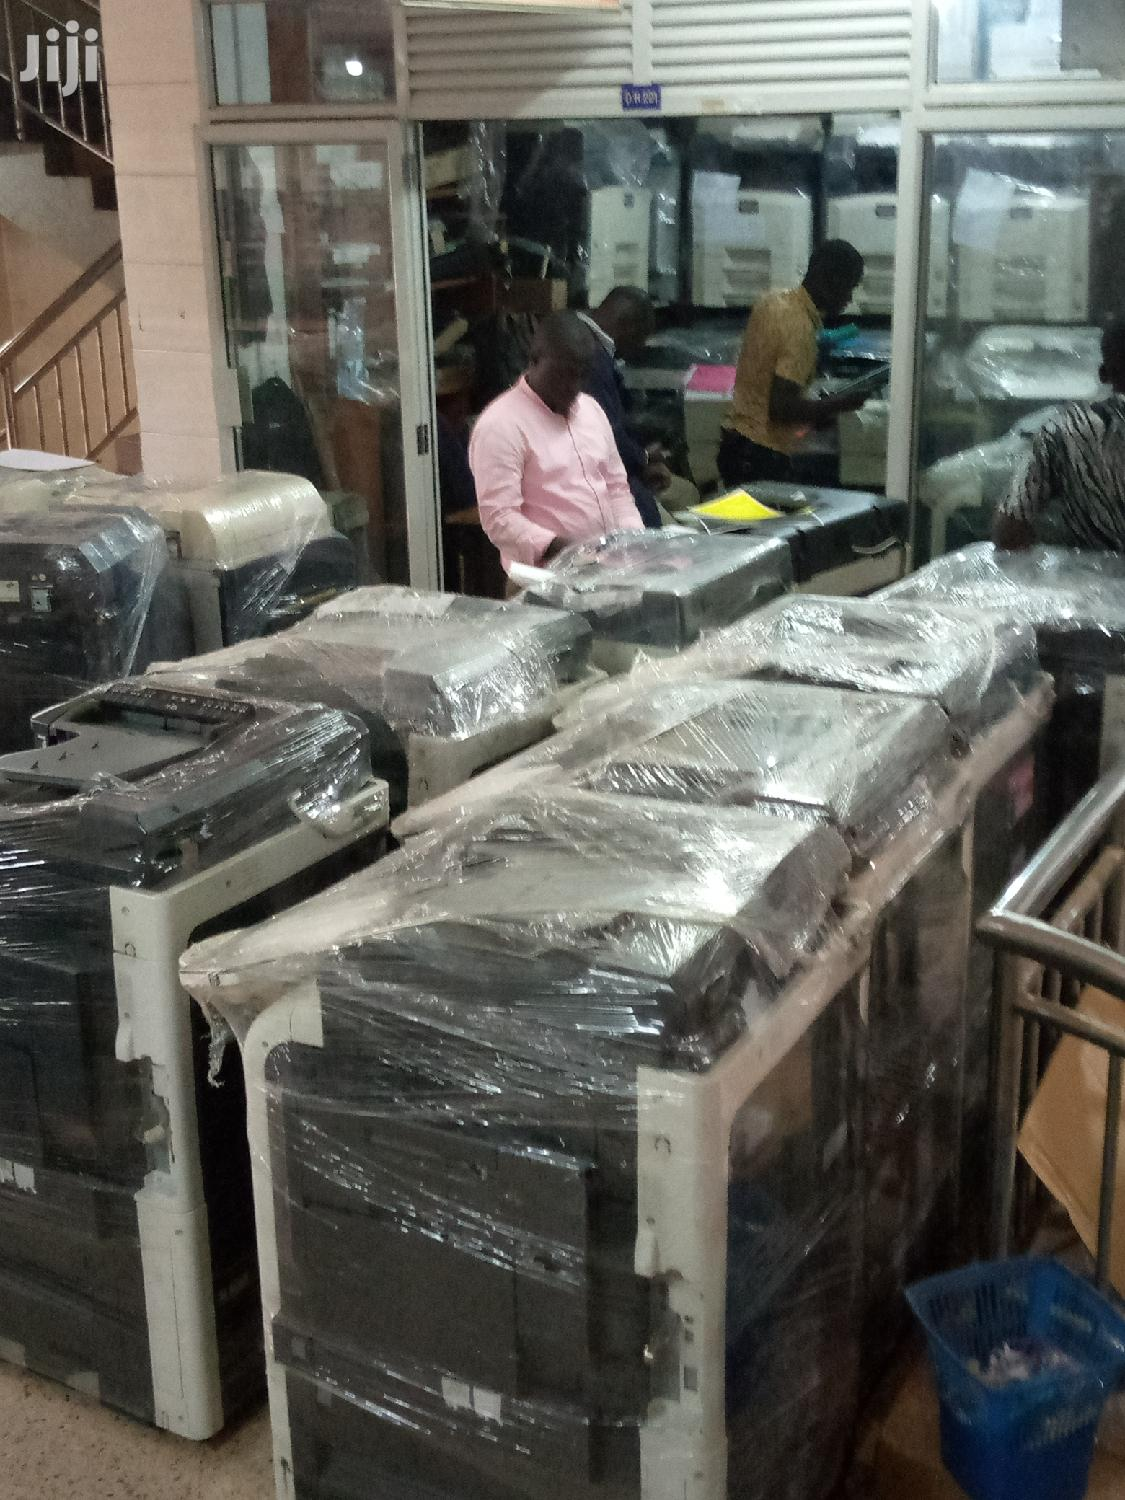 Heavy Duty Printers New Stock | Printers & Scanners for sale in Kampala, Central Region, Uganda